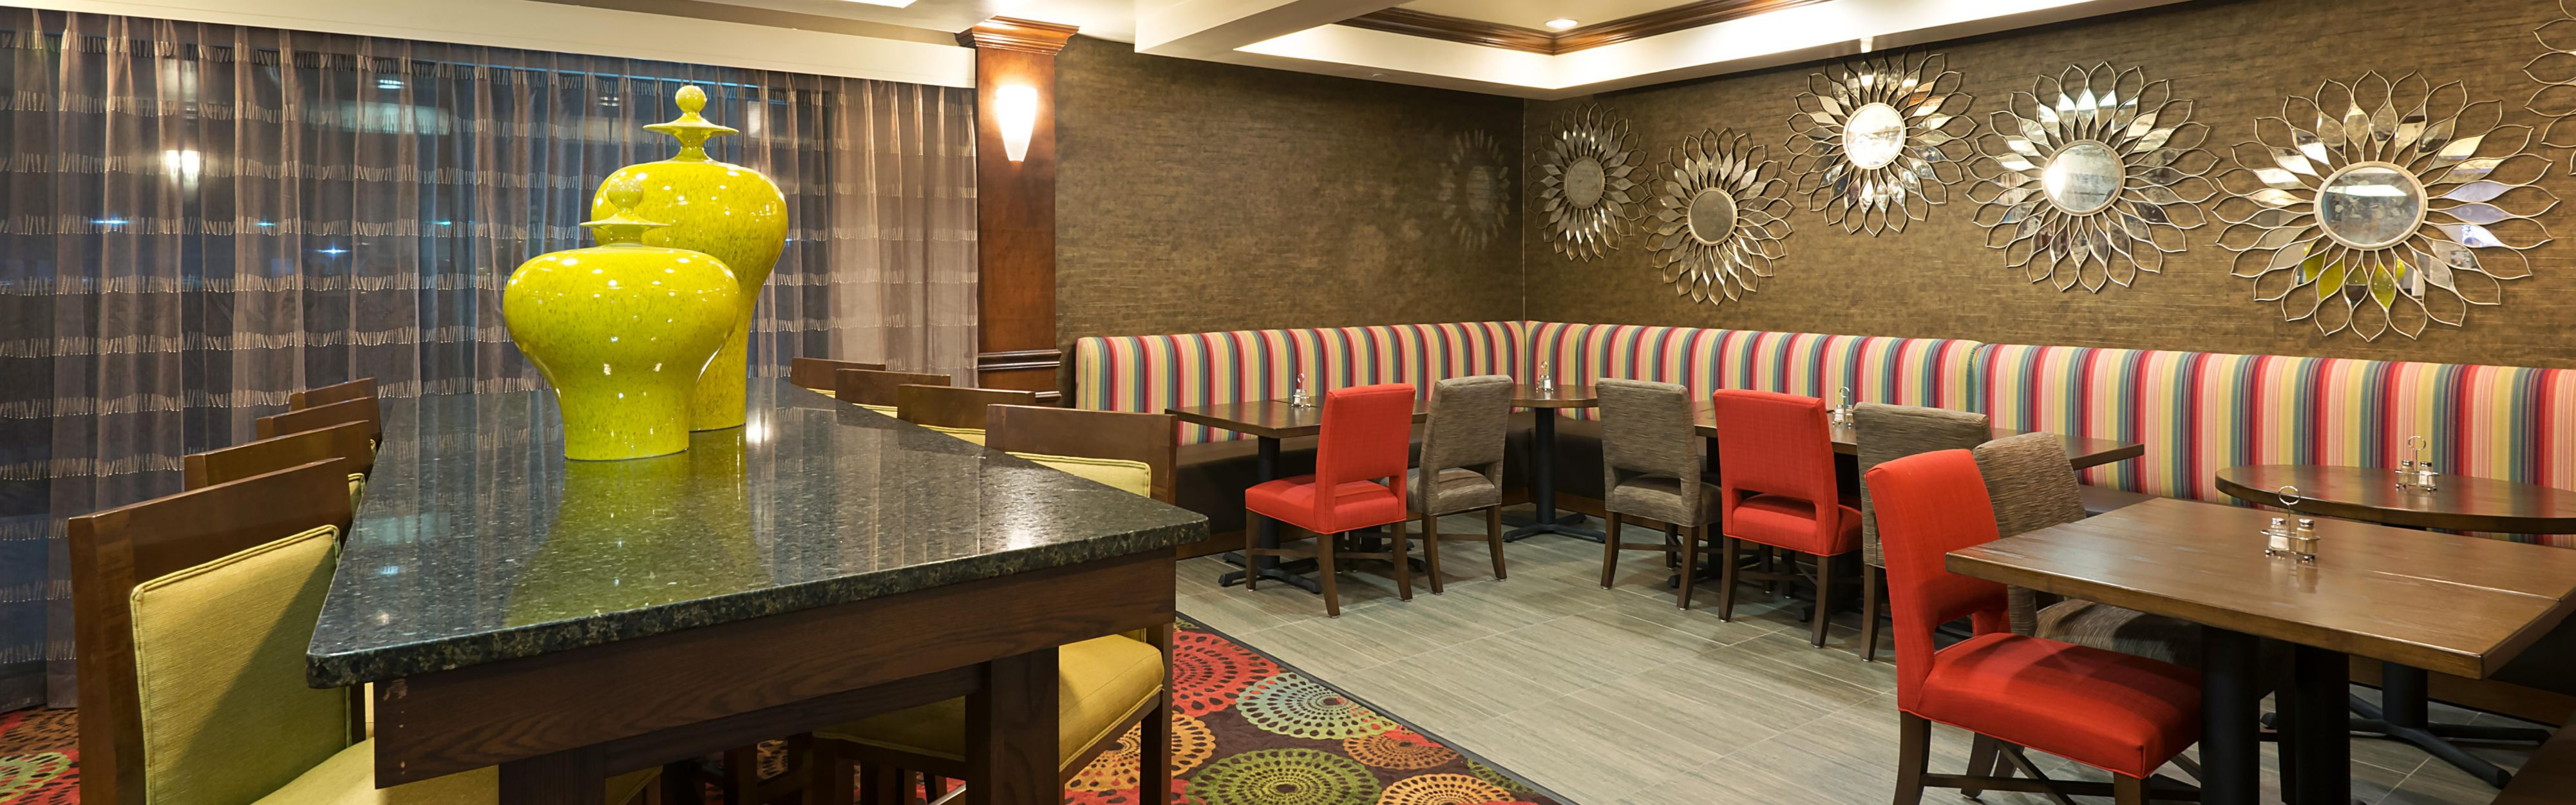 Holiday Inn Express & Suites Little Rock-West image 3